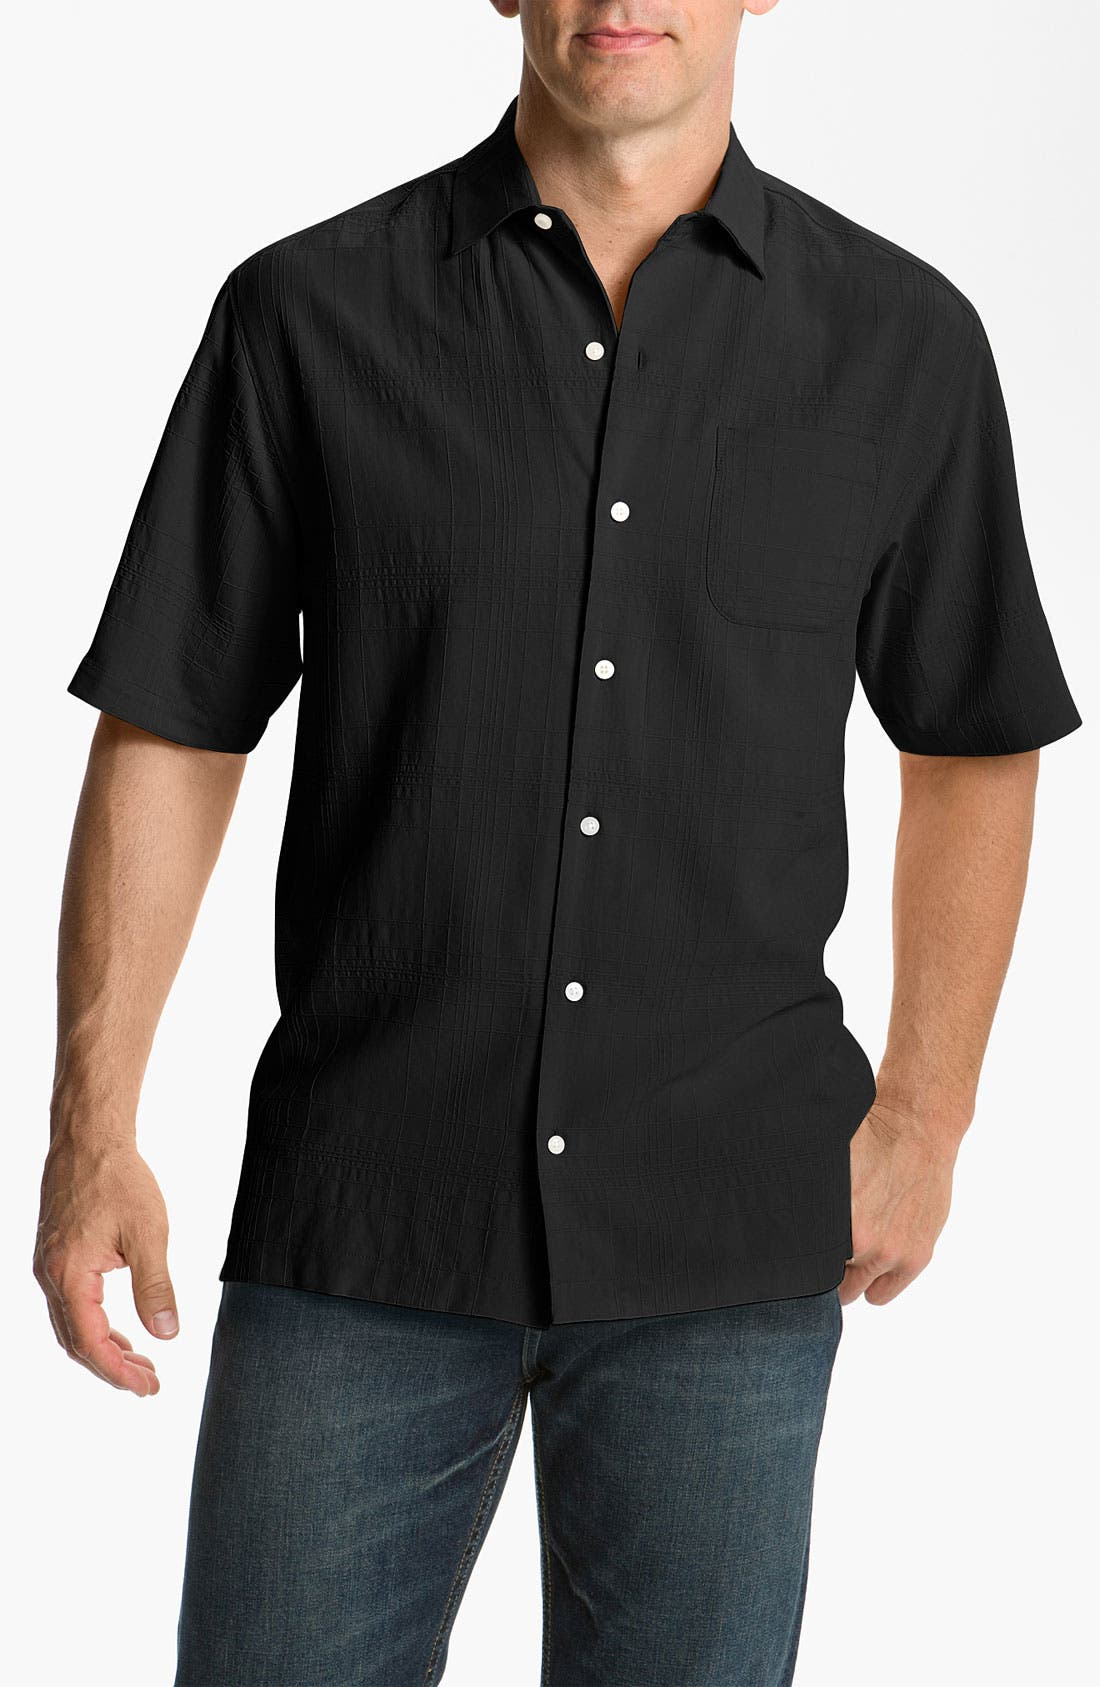 Alternate Image 1 Selected - Tommy Bahama 'Skyscraper' Silk Campshirt (Big & Tall)